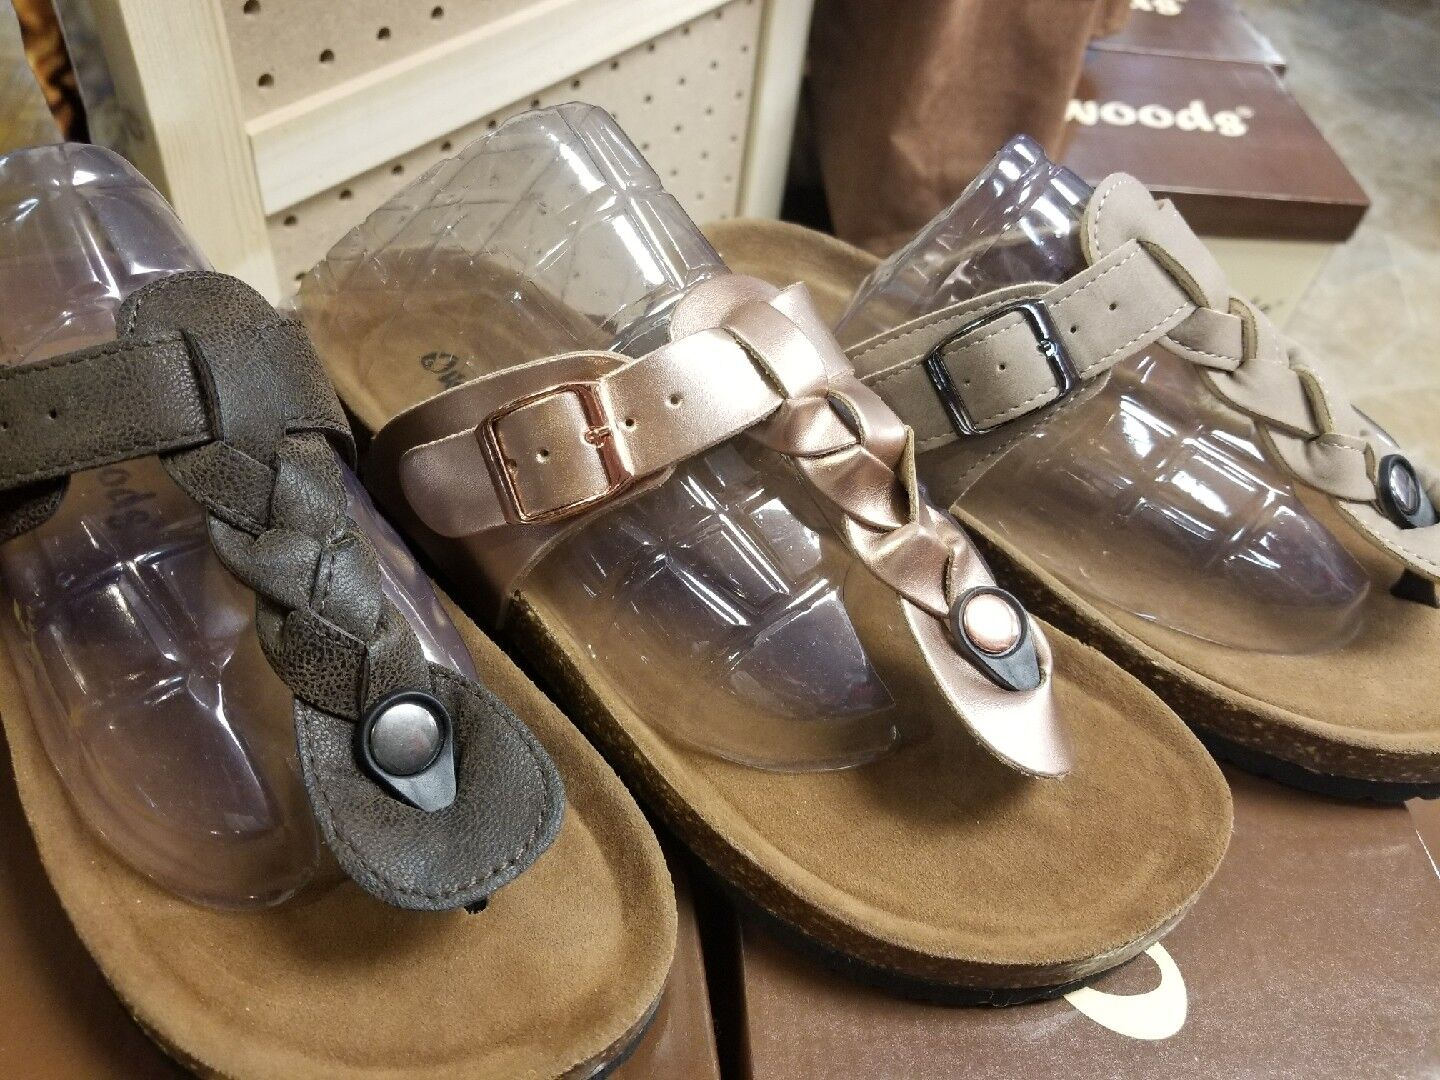 OUTWOODS BRAIDED SANDALS ROSE GOLD 6, TAUPE BROWN SIZE 5, 6, GOLD 7, 8, 9, 10, 11 031f56